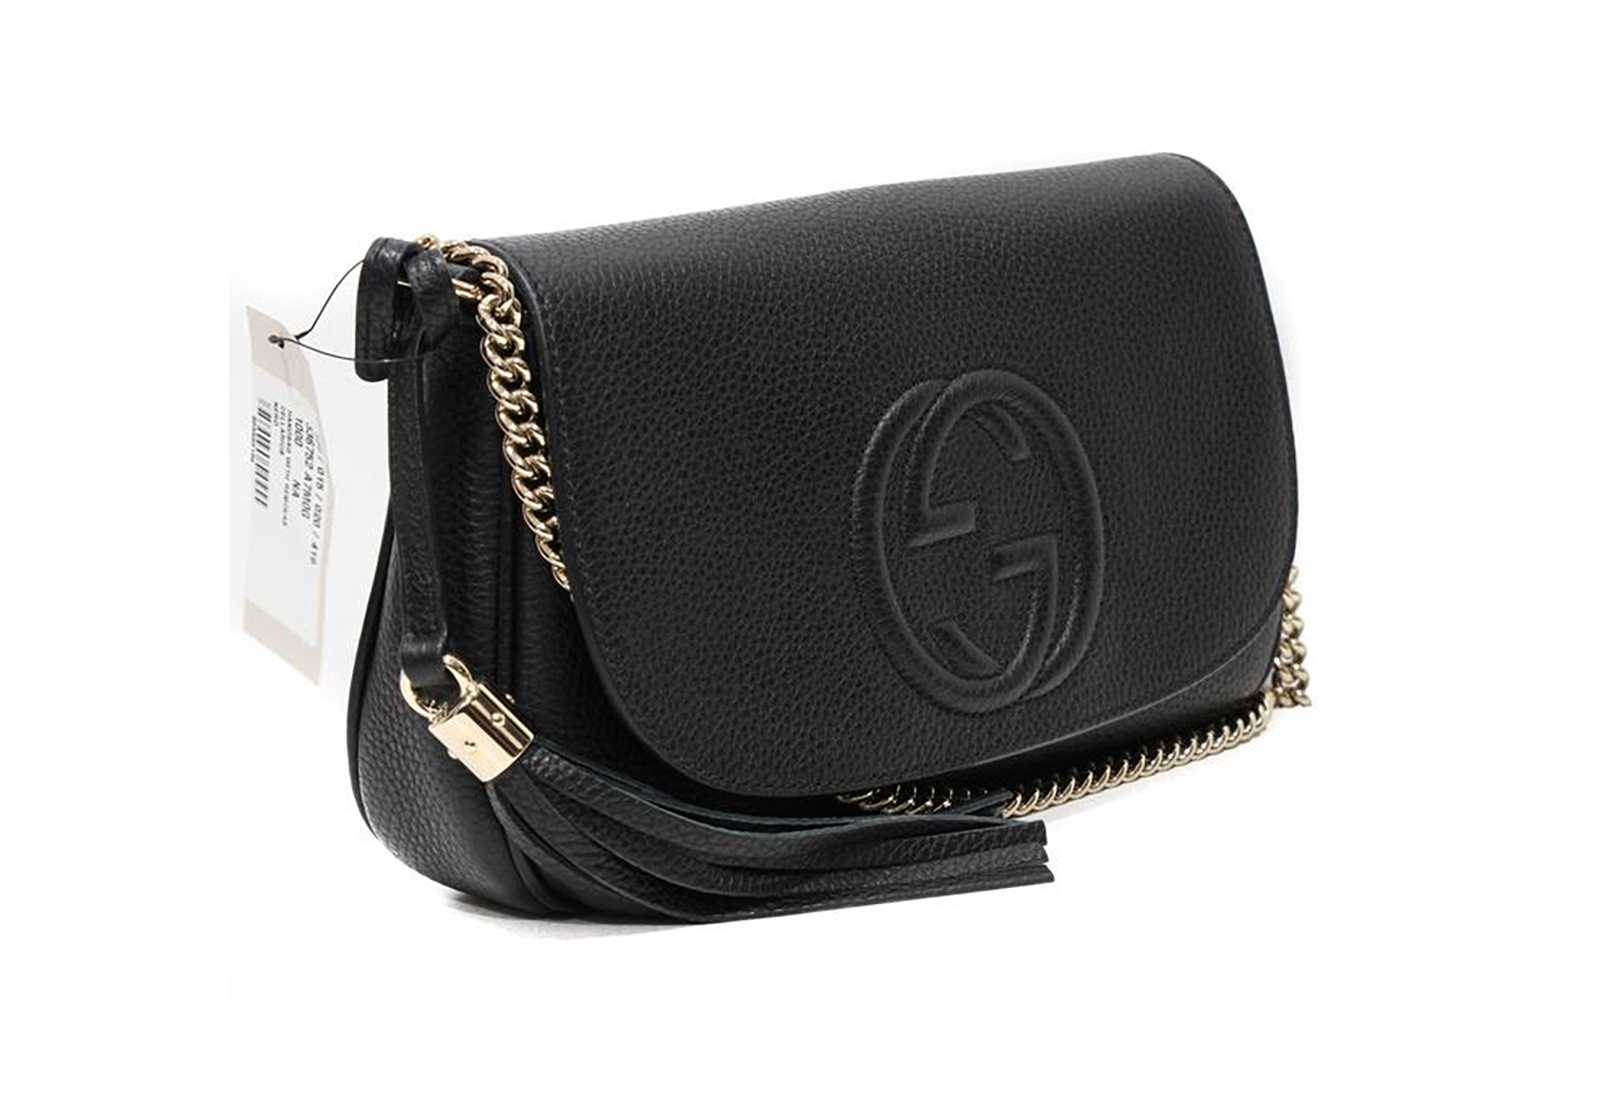 c55aa48ef16 How to Authenticate Gucci Handbags